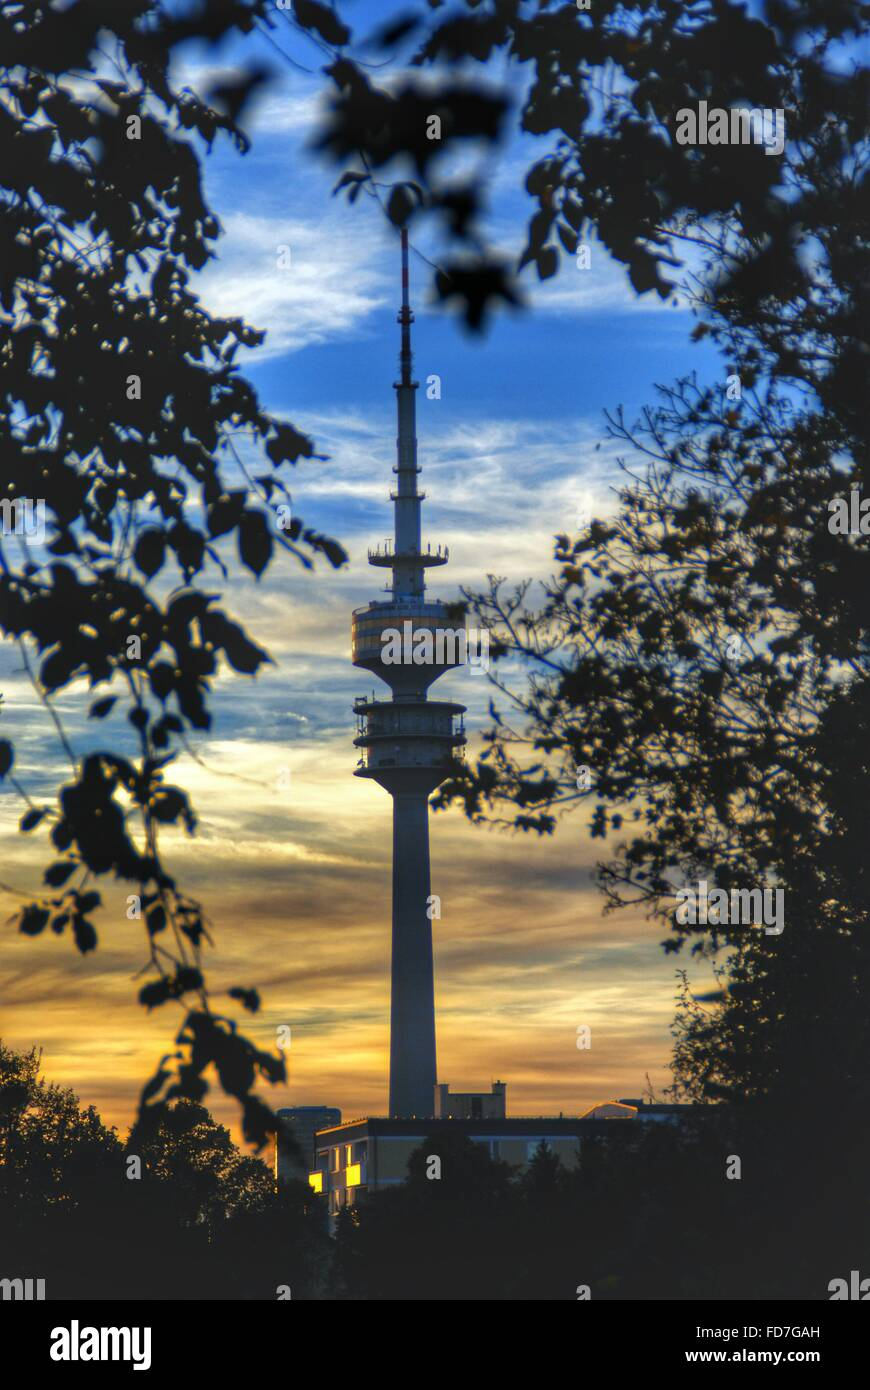 Olympic Tower Against Sky At Dusk - Stock Image